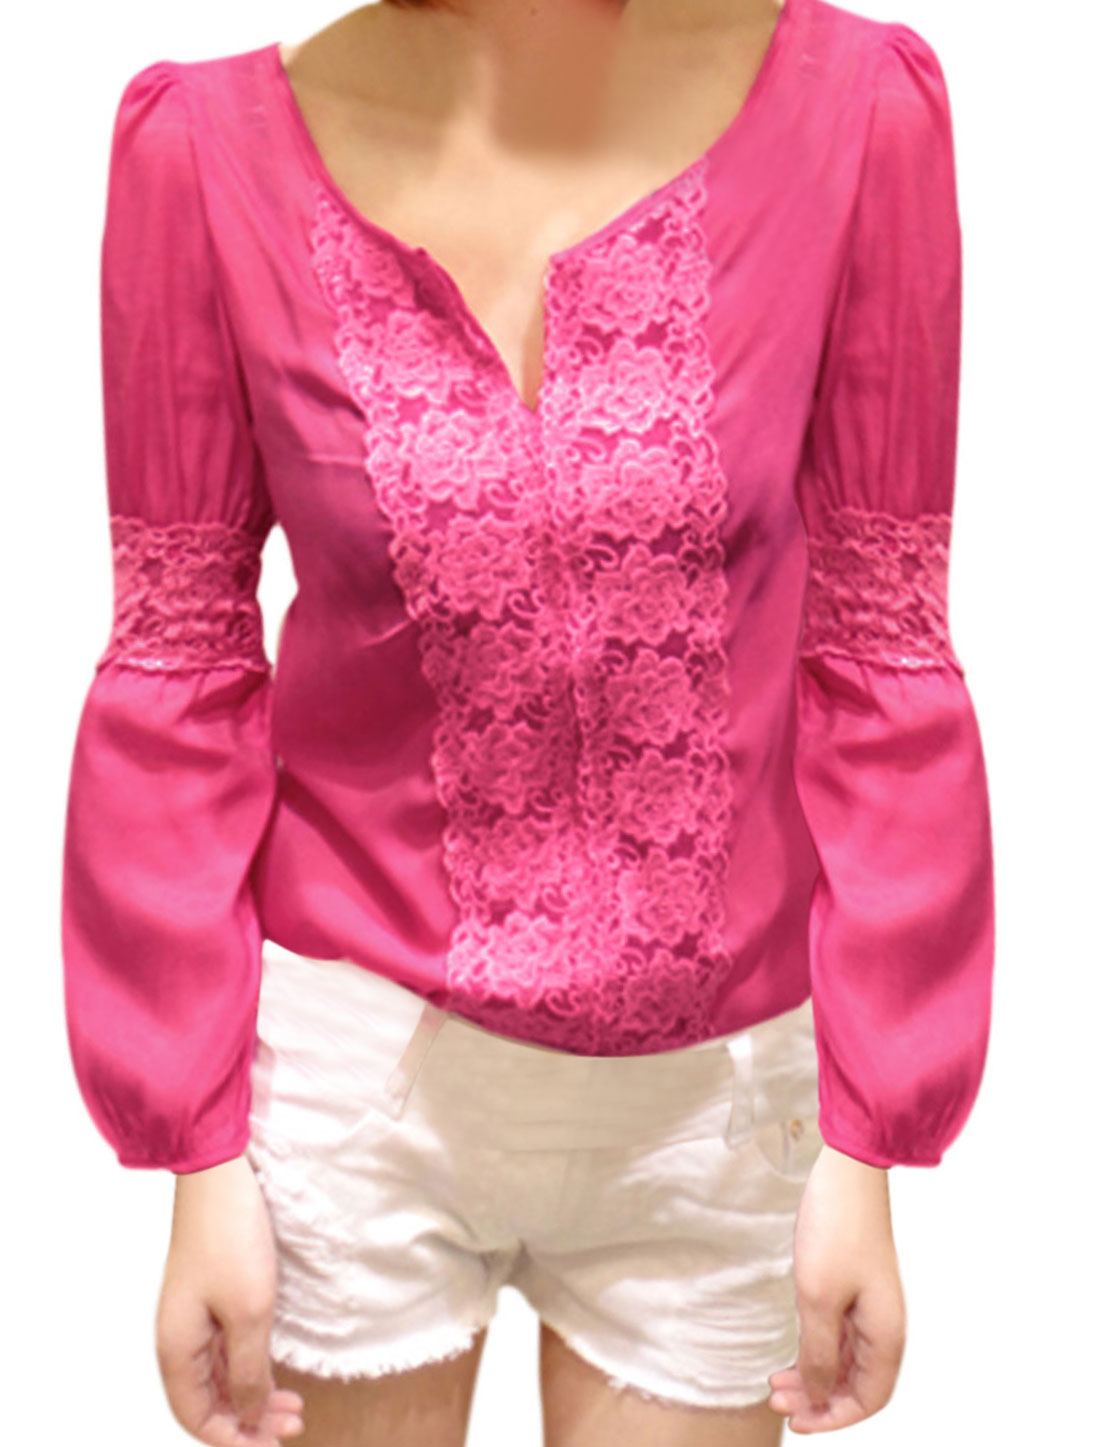 Women Fashion Design Split Neck Lace Panel Blouse Fuchsia XS